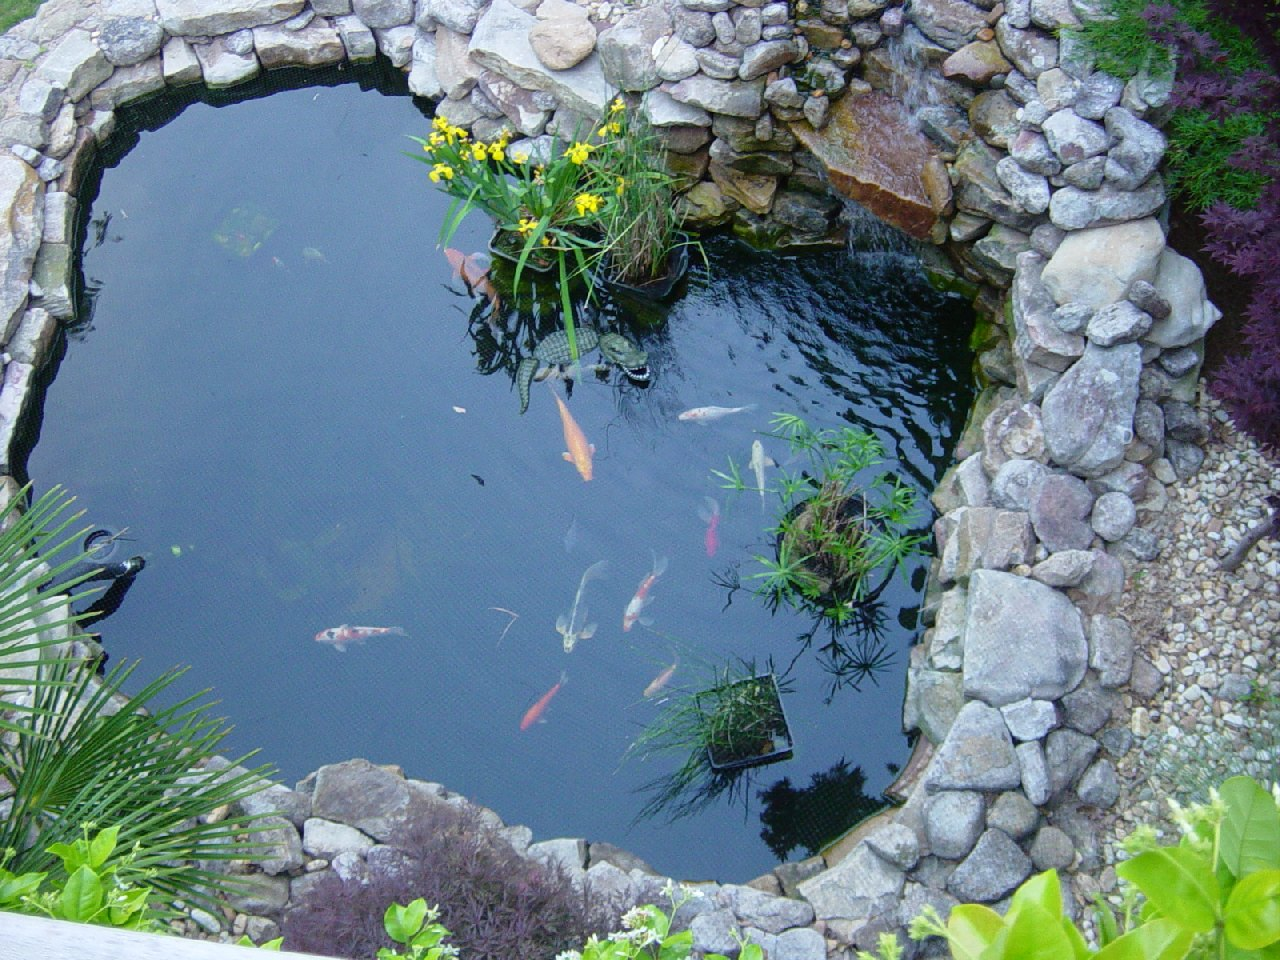 Luxury koi fish pond design ideas home trendy for Koi pool design